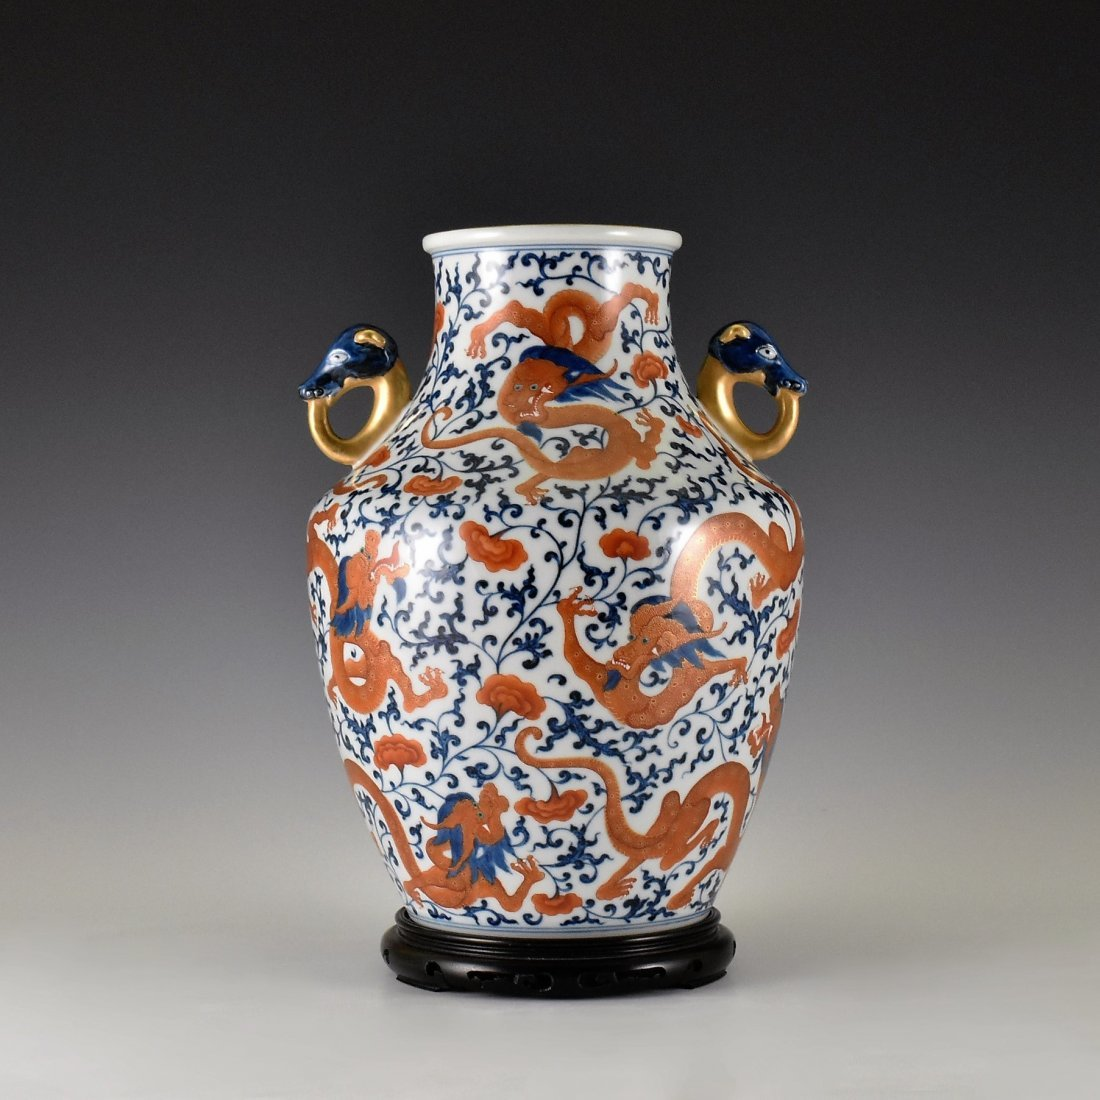 BLUE AND RED PORCELAIN ZUN VASE WITH GILT HANDLES